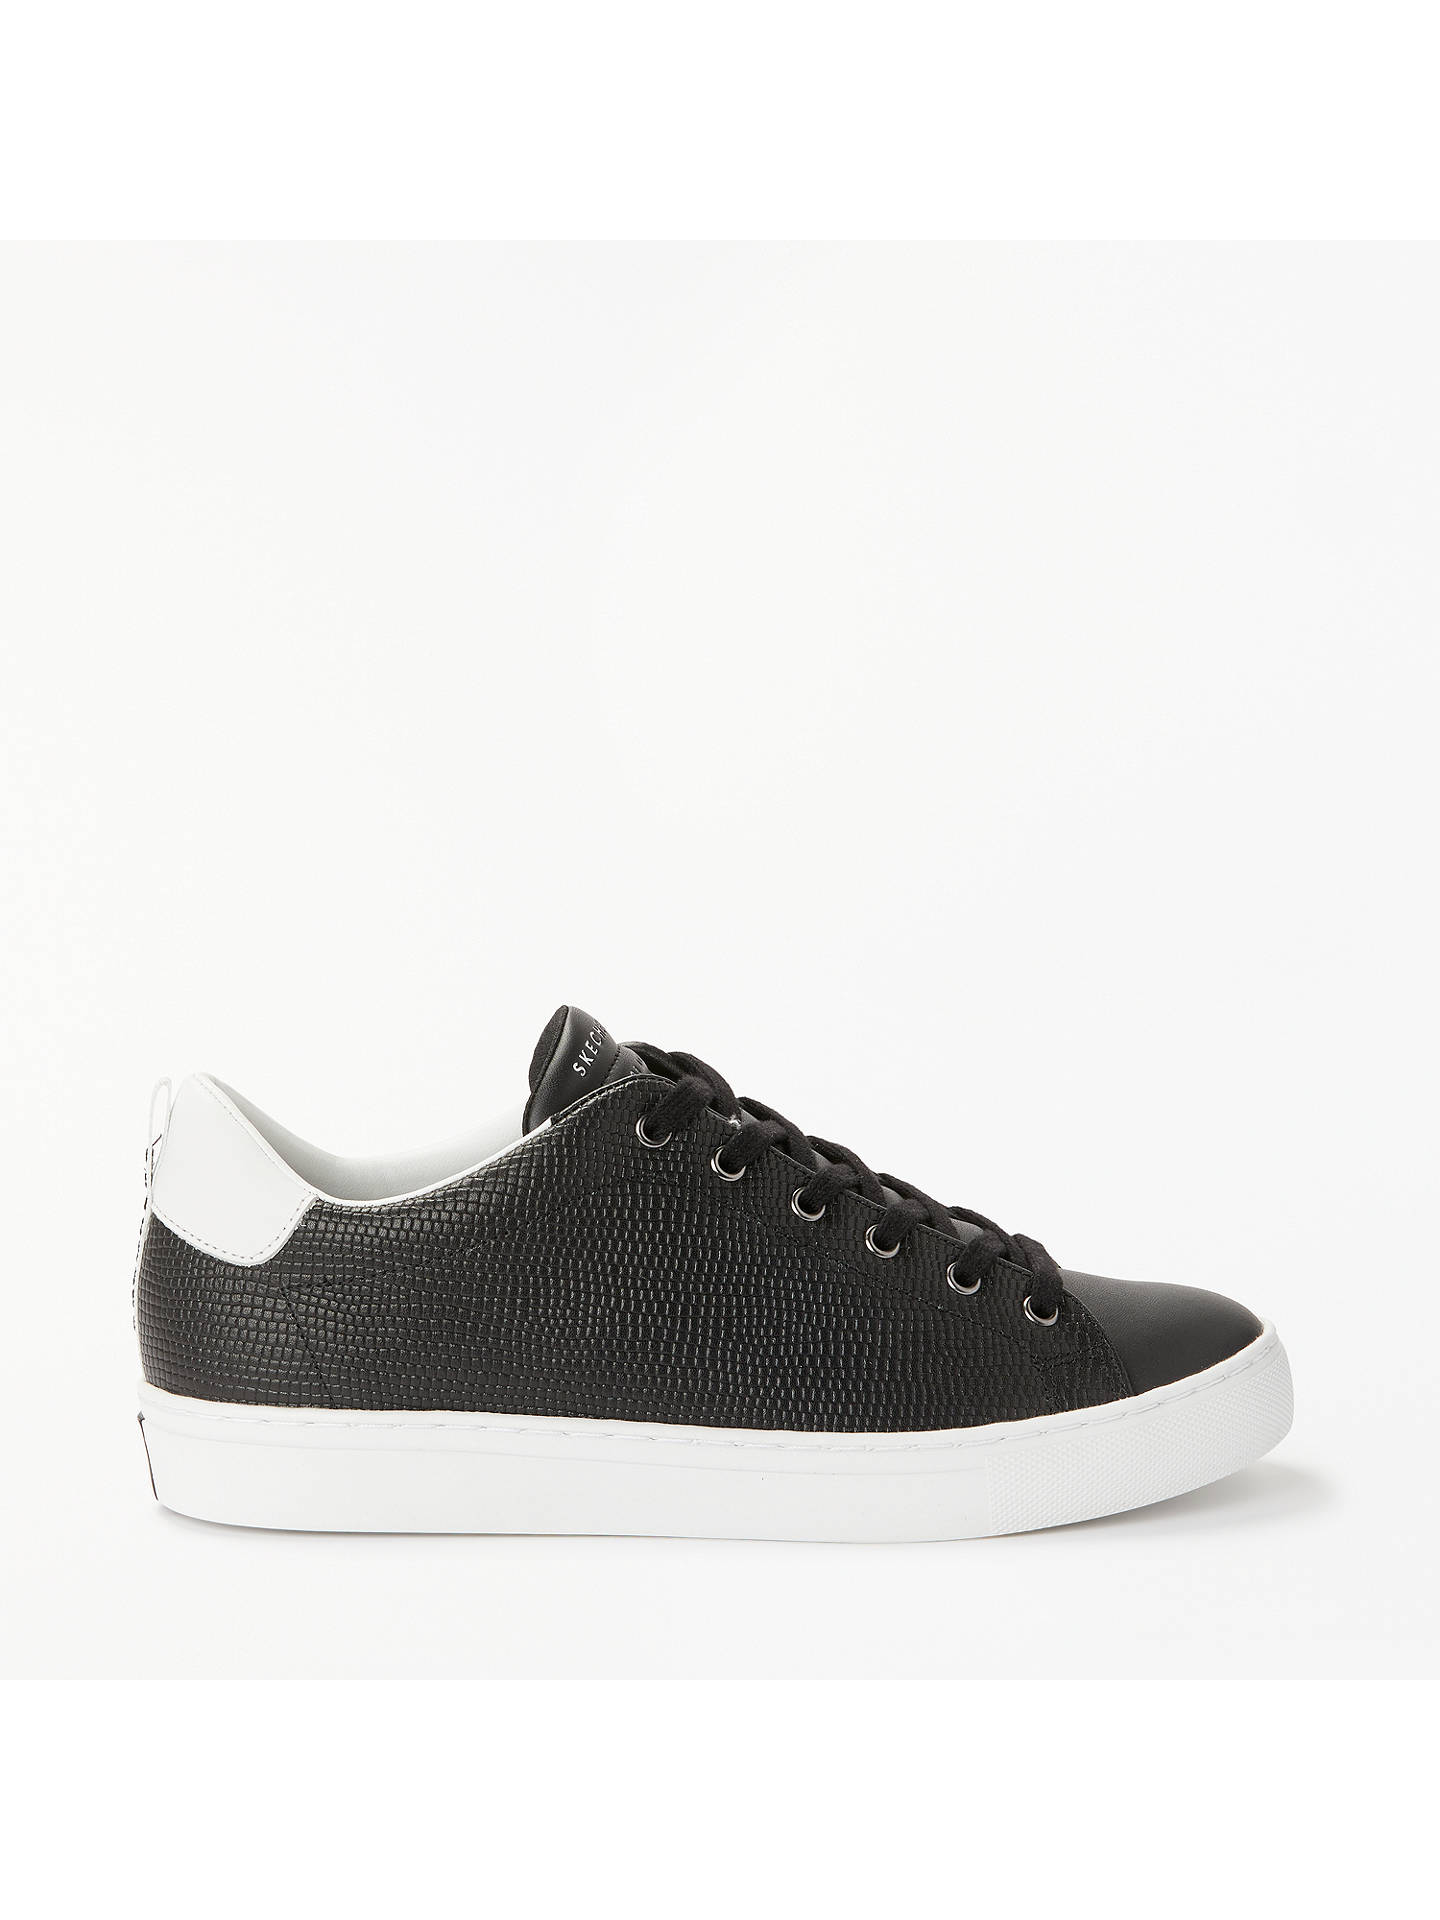 BuySkechers Side Street Tegu Lace Up Trainers, Black Leather, 3 Online at johnlewis.com